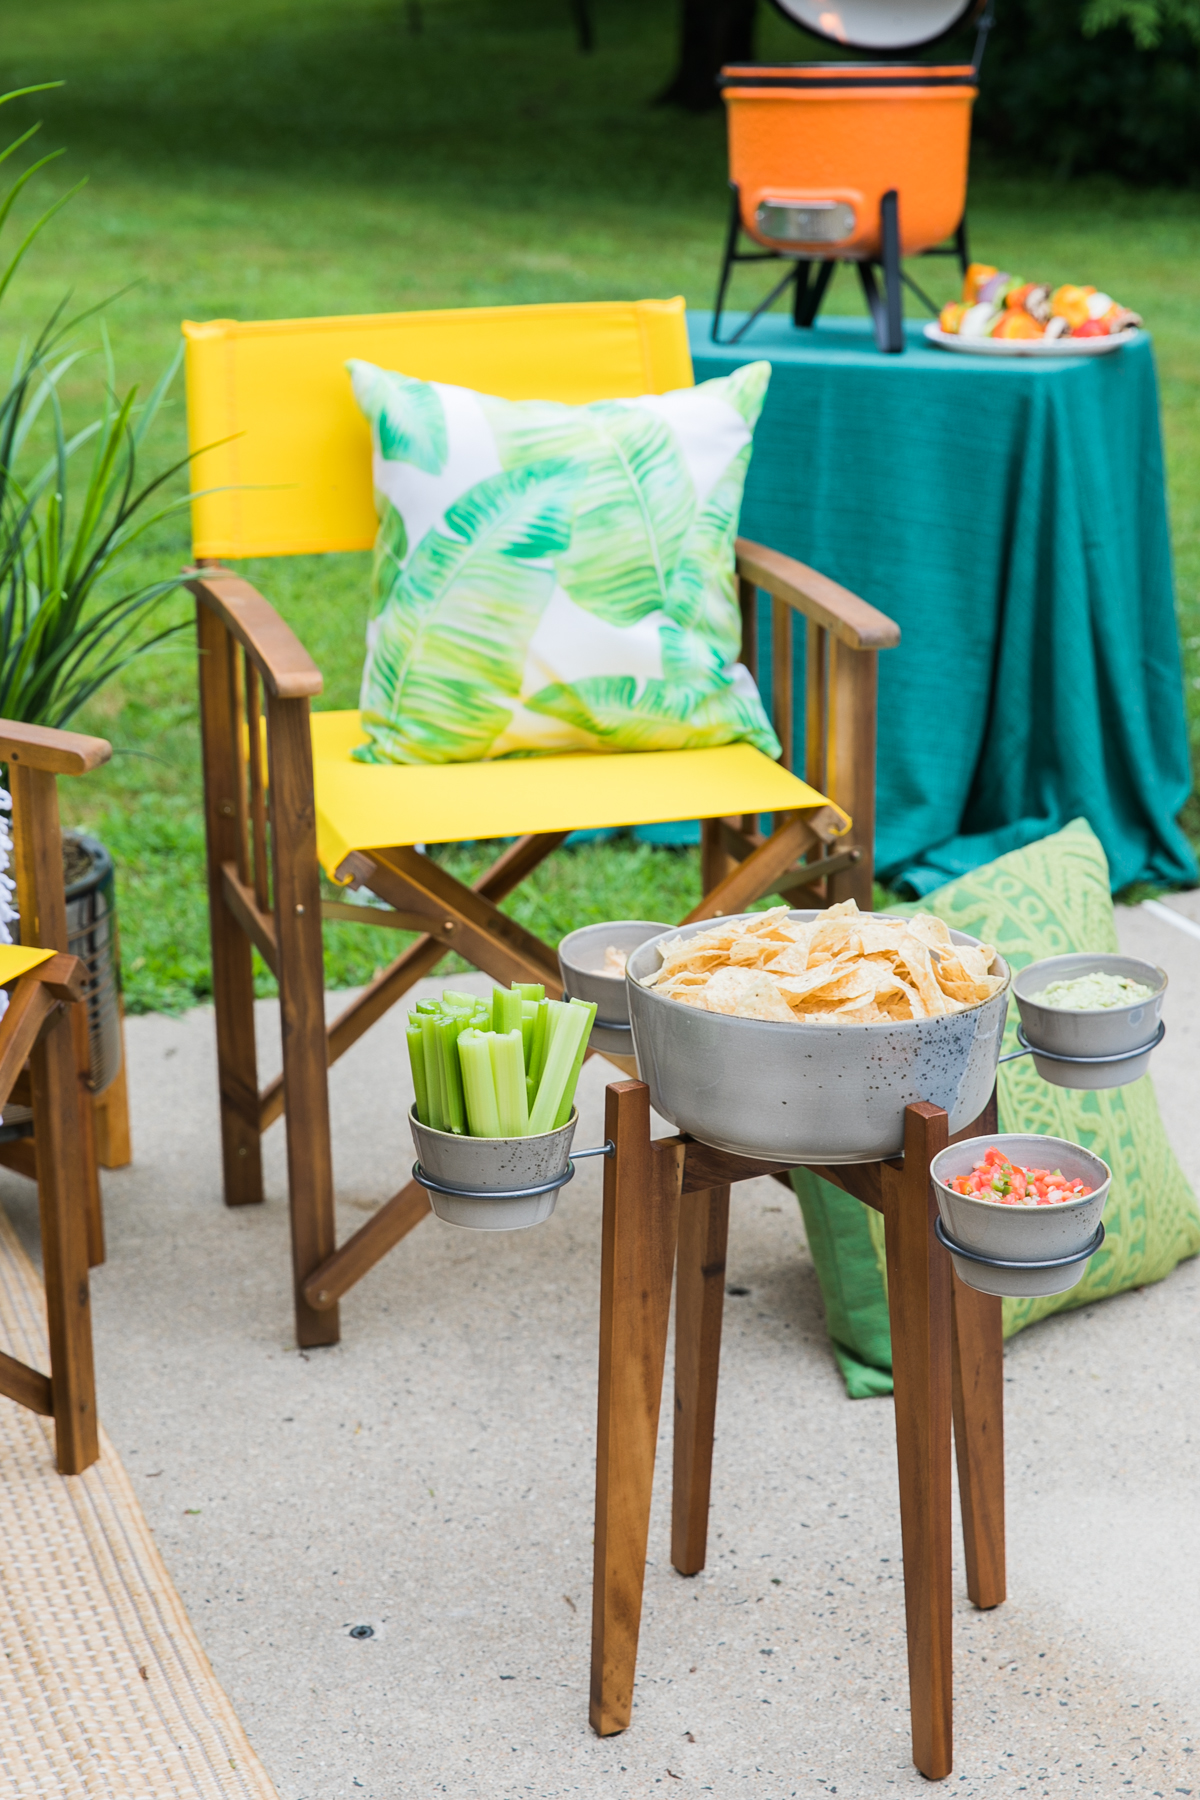 Colorful Summer Pool Party Ideas | Outdoor Entertaining | Bed, Bath & Beyond | Jessica Brigham | Magazine Ready for Life